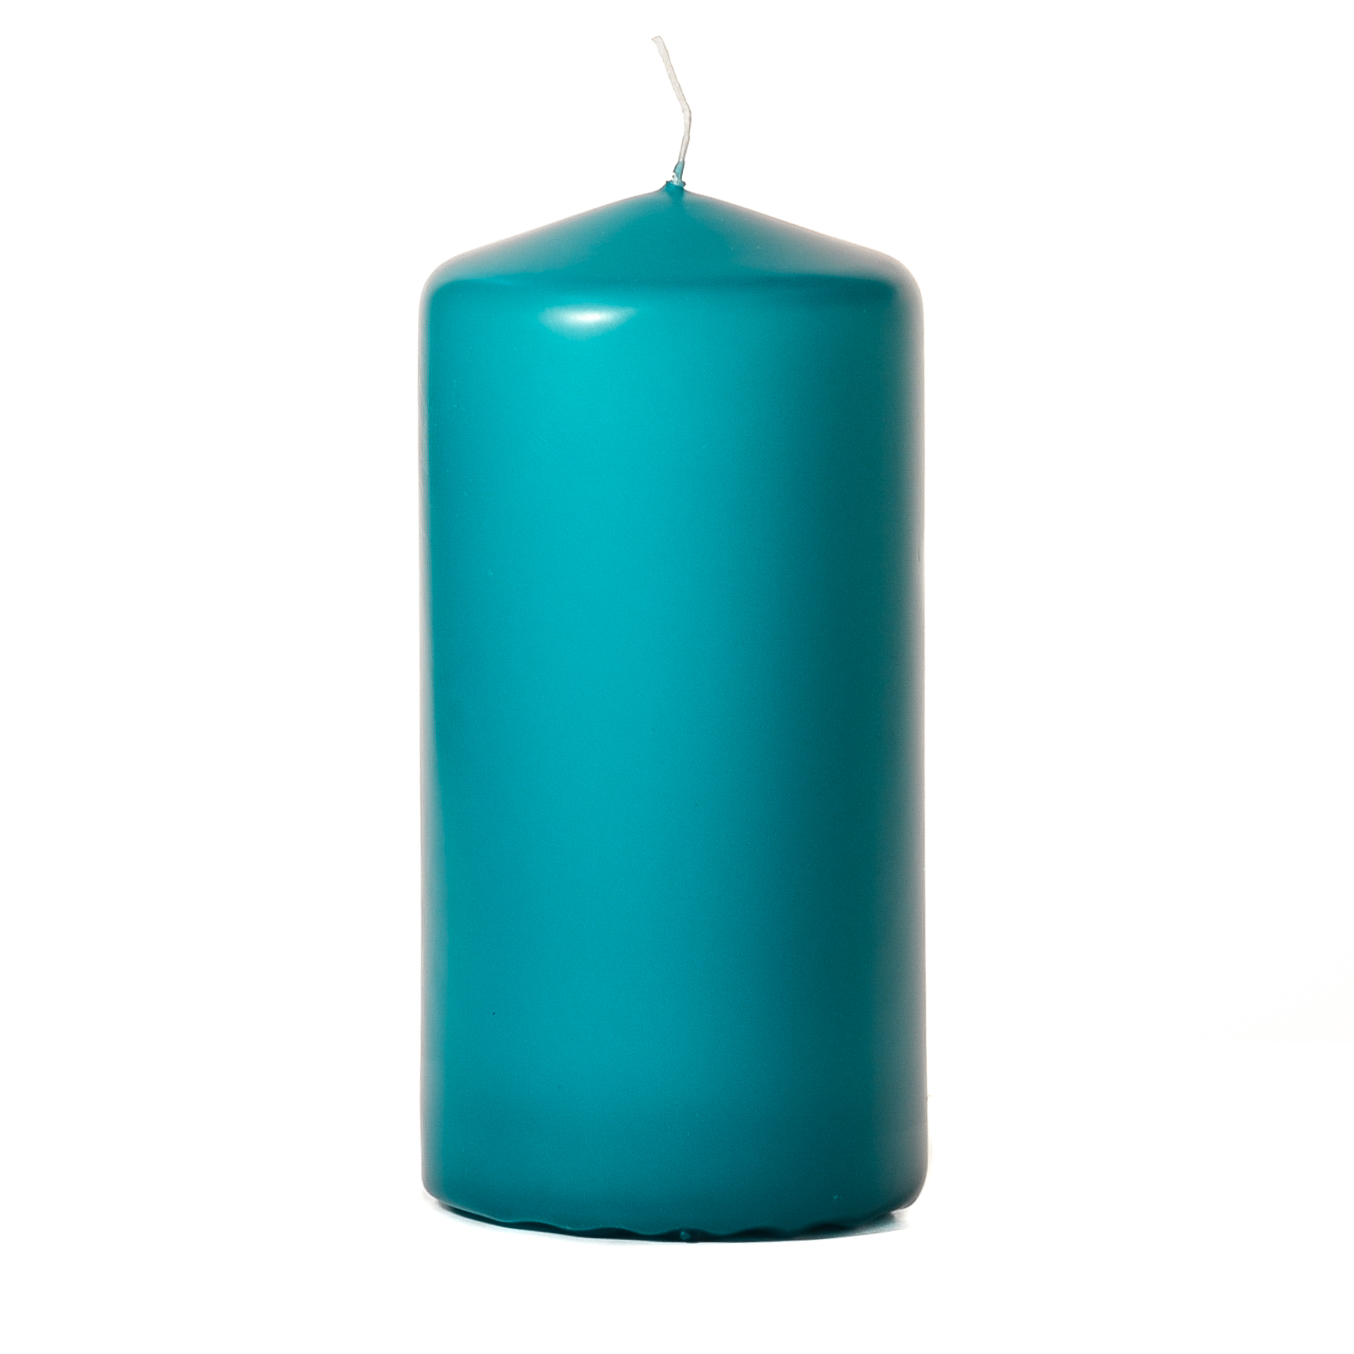 3x6 Mediterranean Blue Pillar Candles Unscented